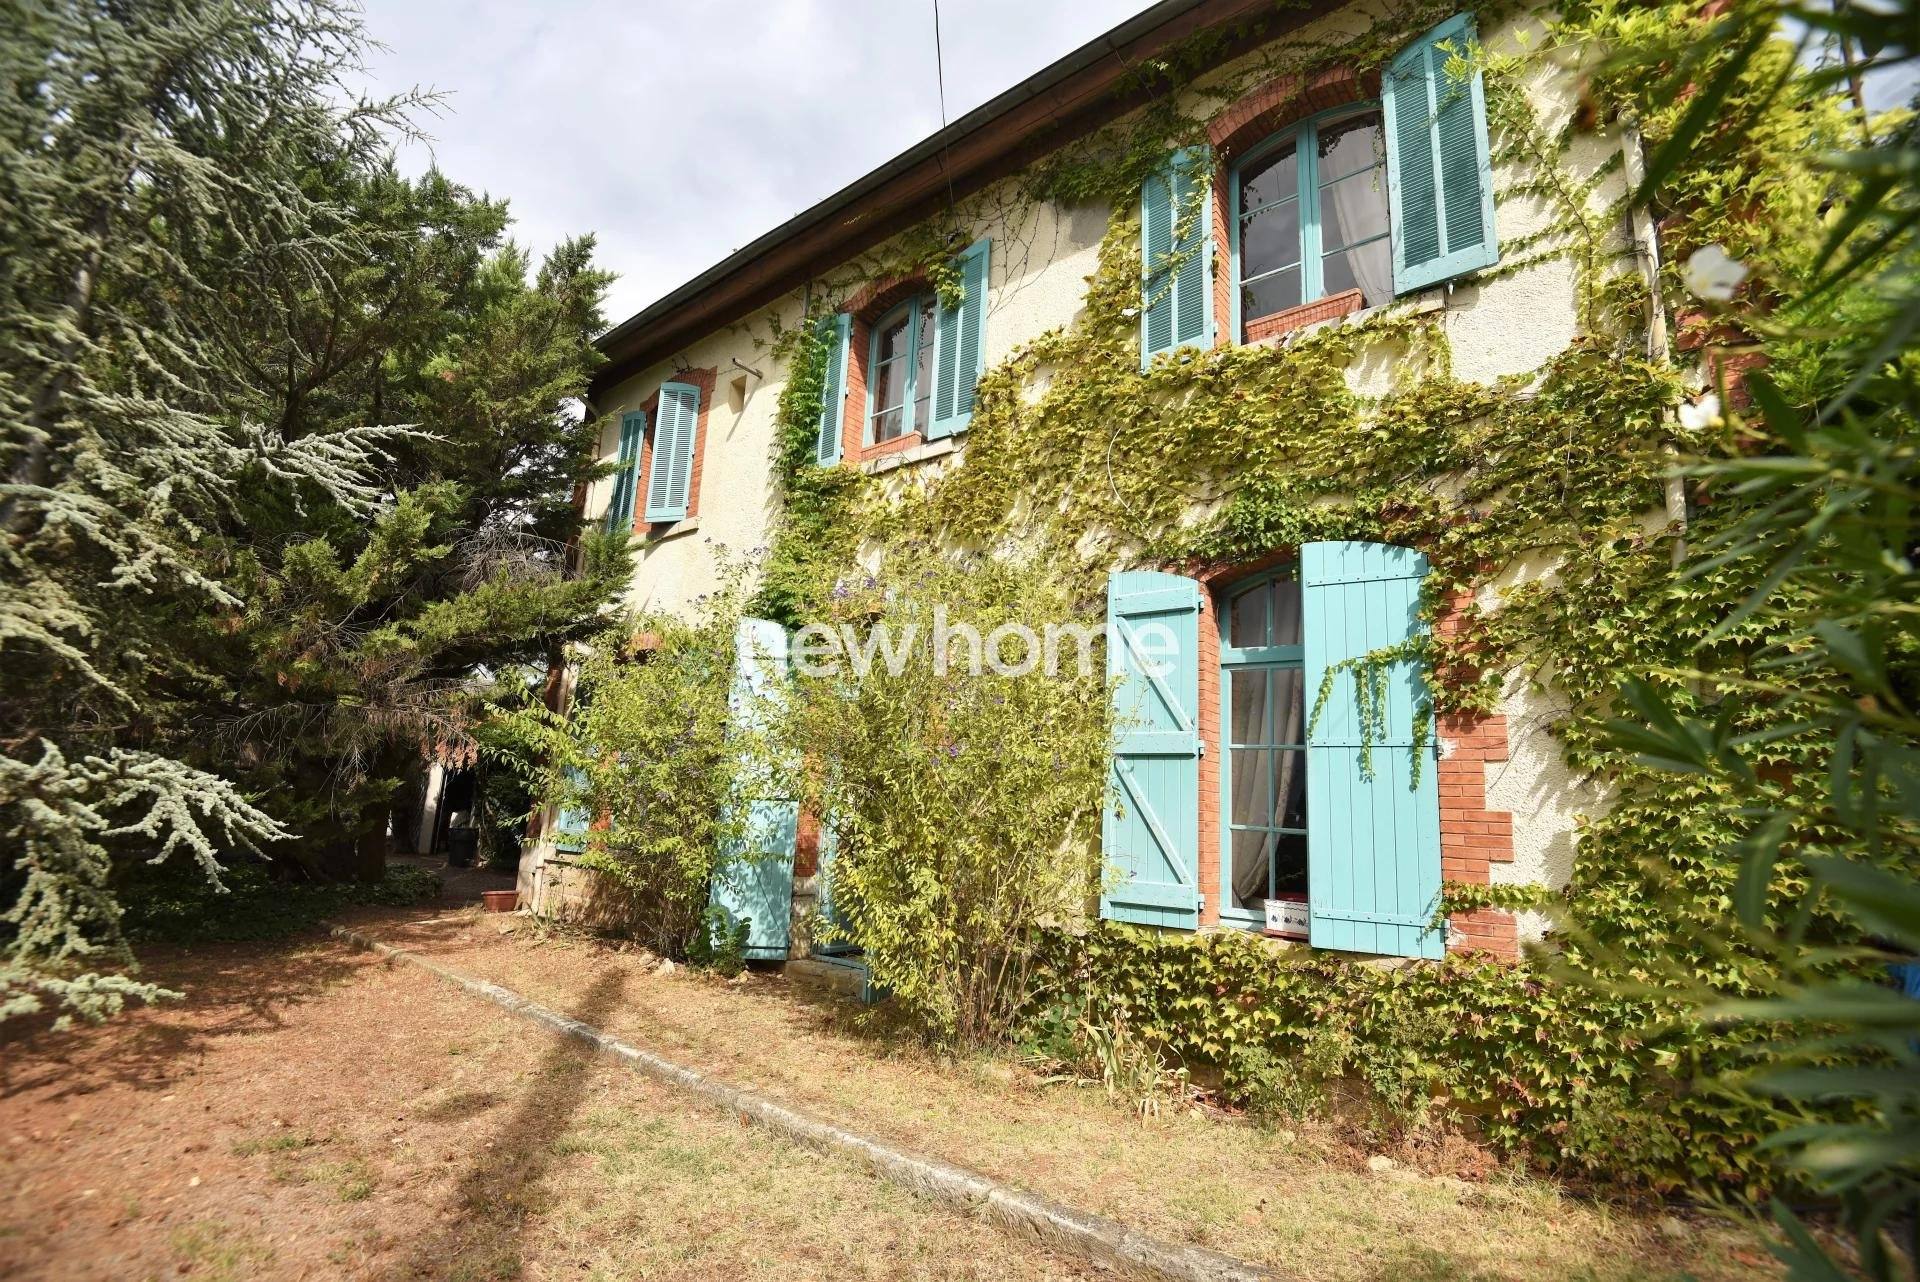 Unique property for sale: the old train station in Lorgues